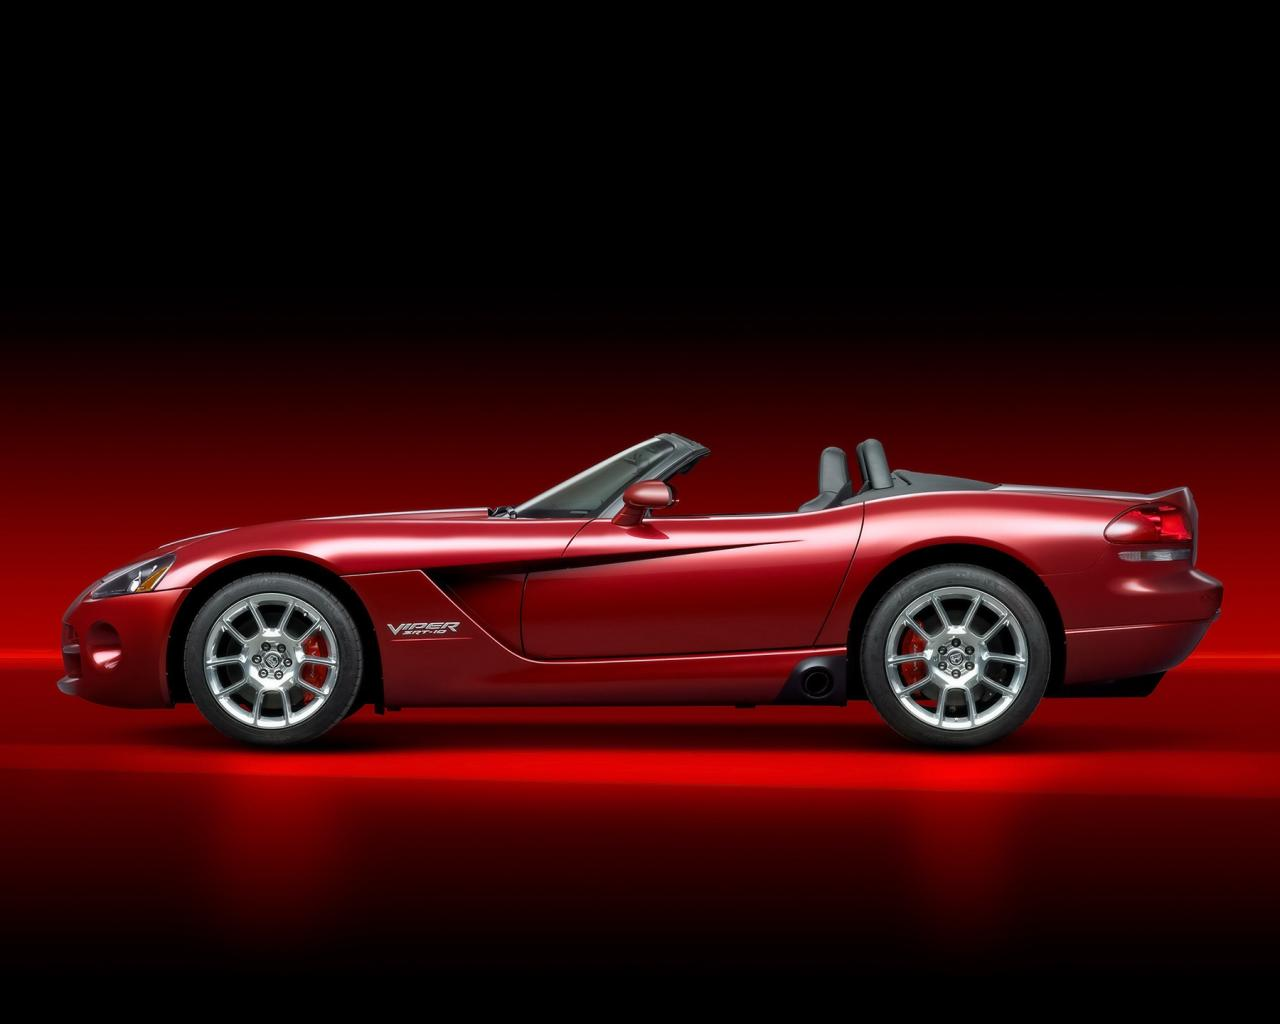 2008 Dodge Viper Srt10 Roadster Side 1280x1024